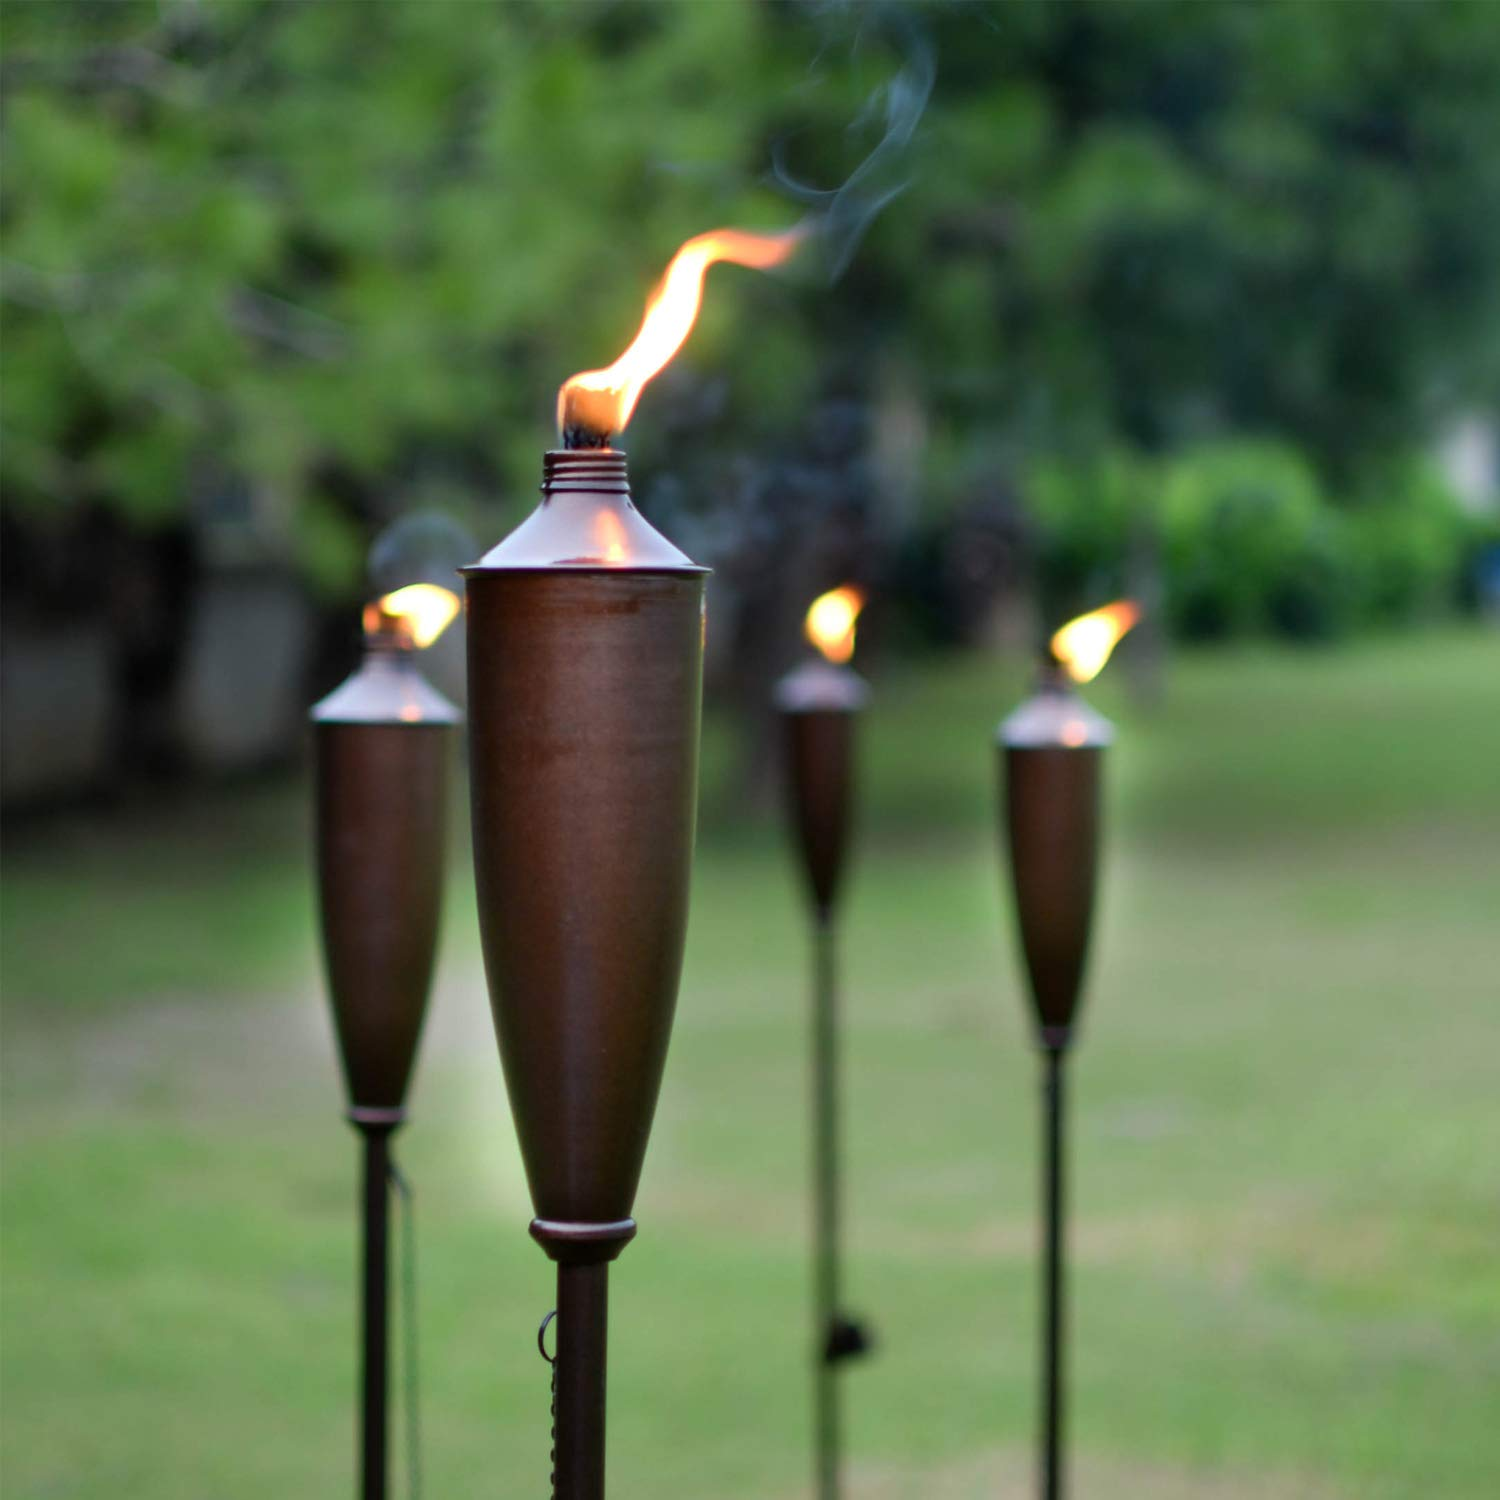 Deco Home Tikki Torch Set of 4 Tikki Torch - 60inch Citronella Garden Outdoor/Patio Flame Metal Torch - Brown by Deco Home